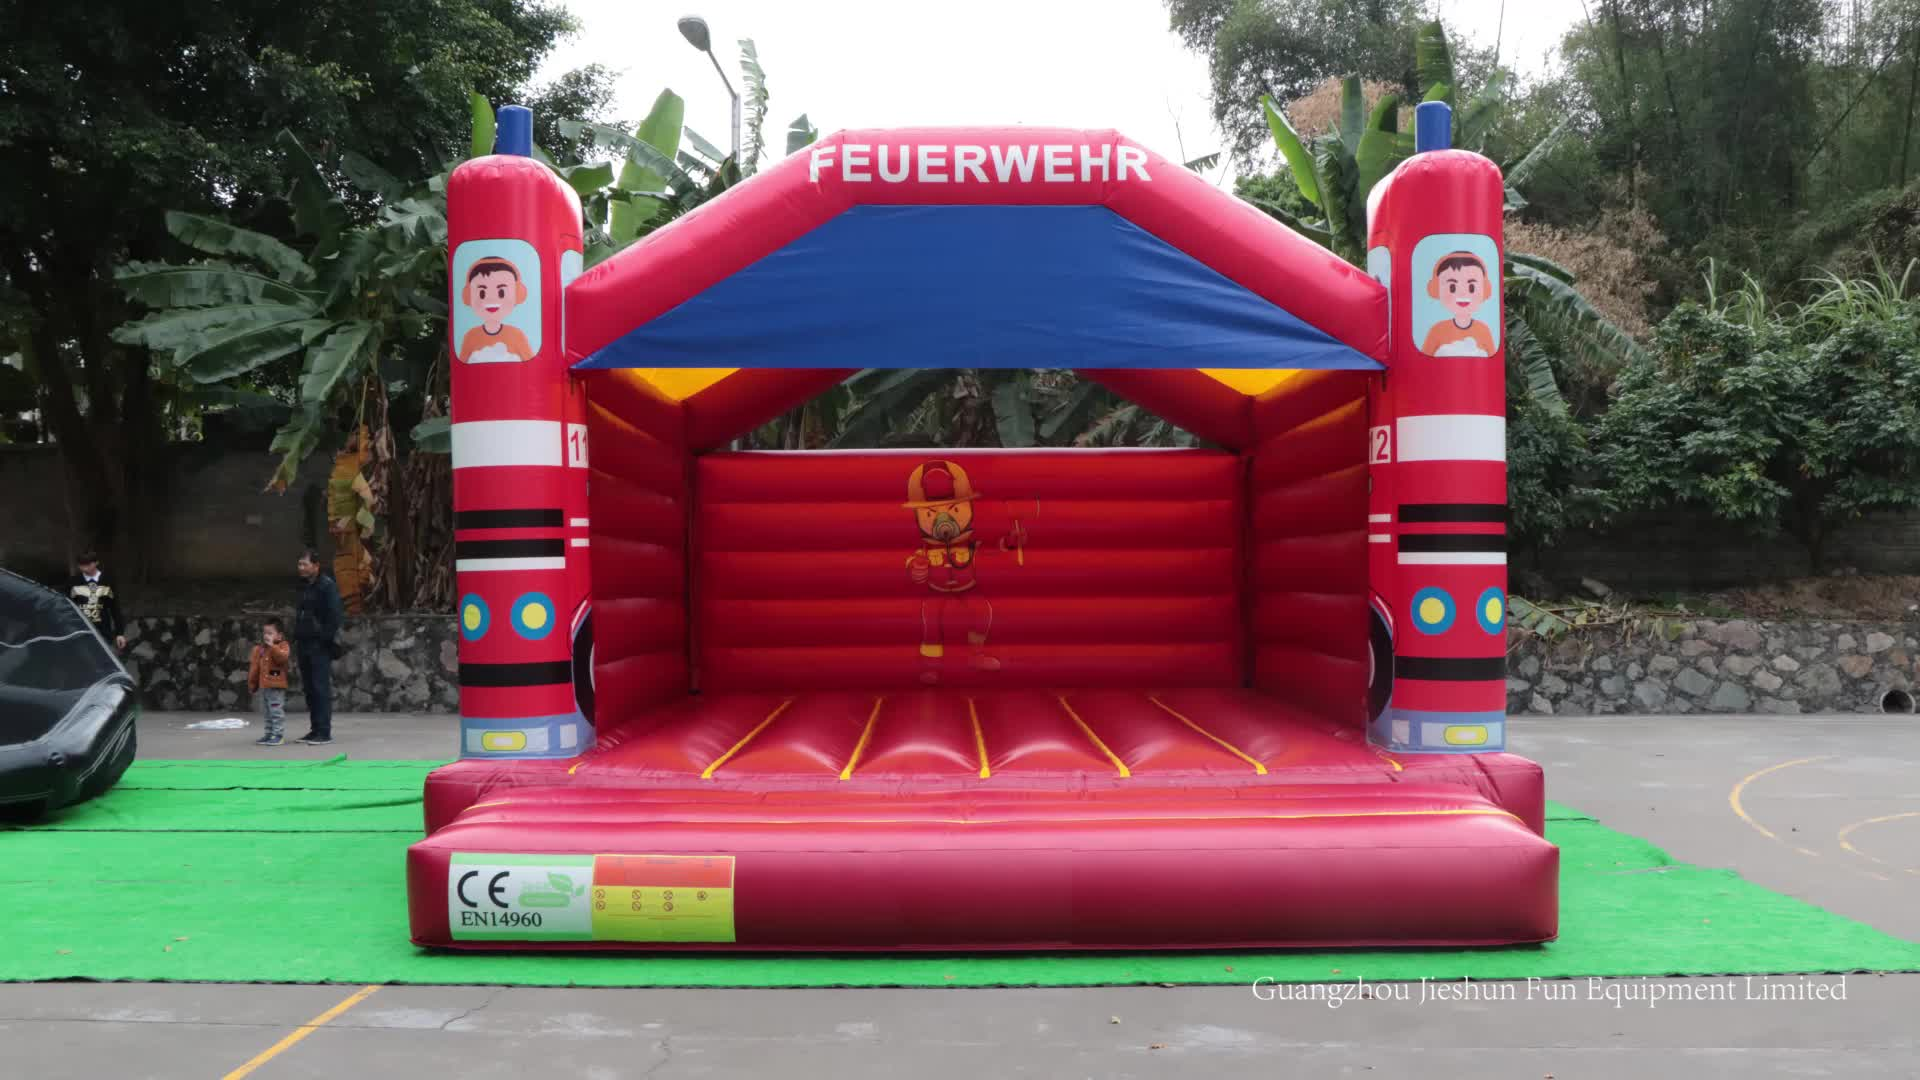 Newest Fire Truck jolly jumper Inflatable Bounce House